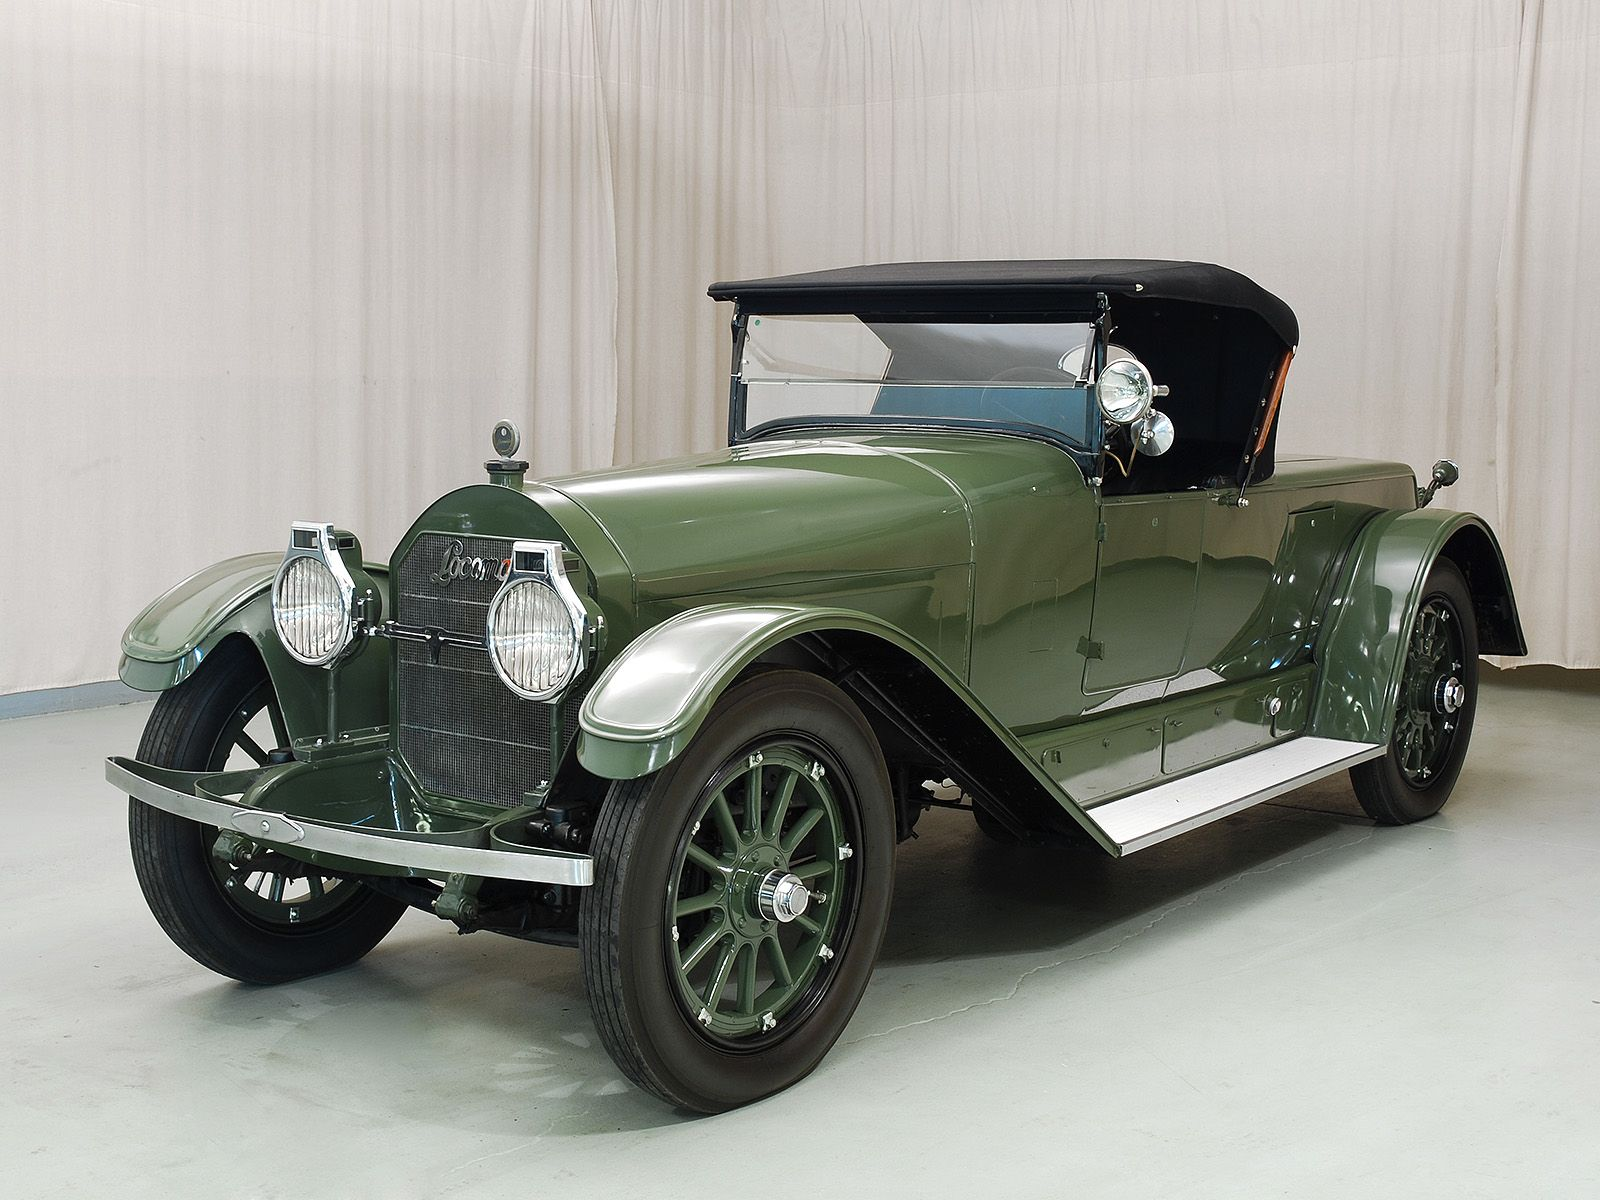 1919 Locomobile Model 48 Roadster I would love to have | classy ...